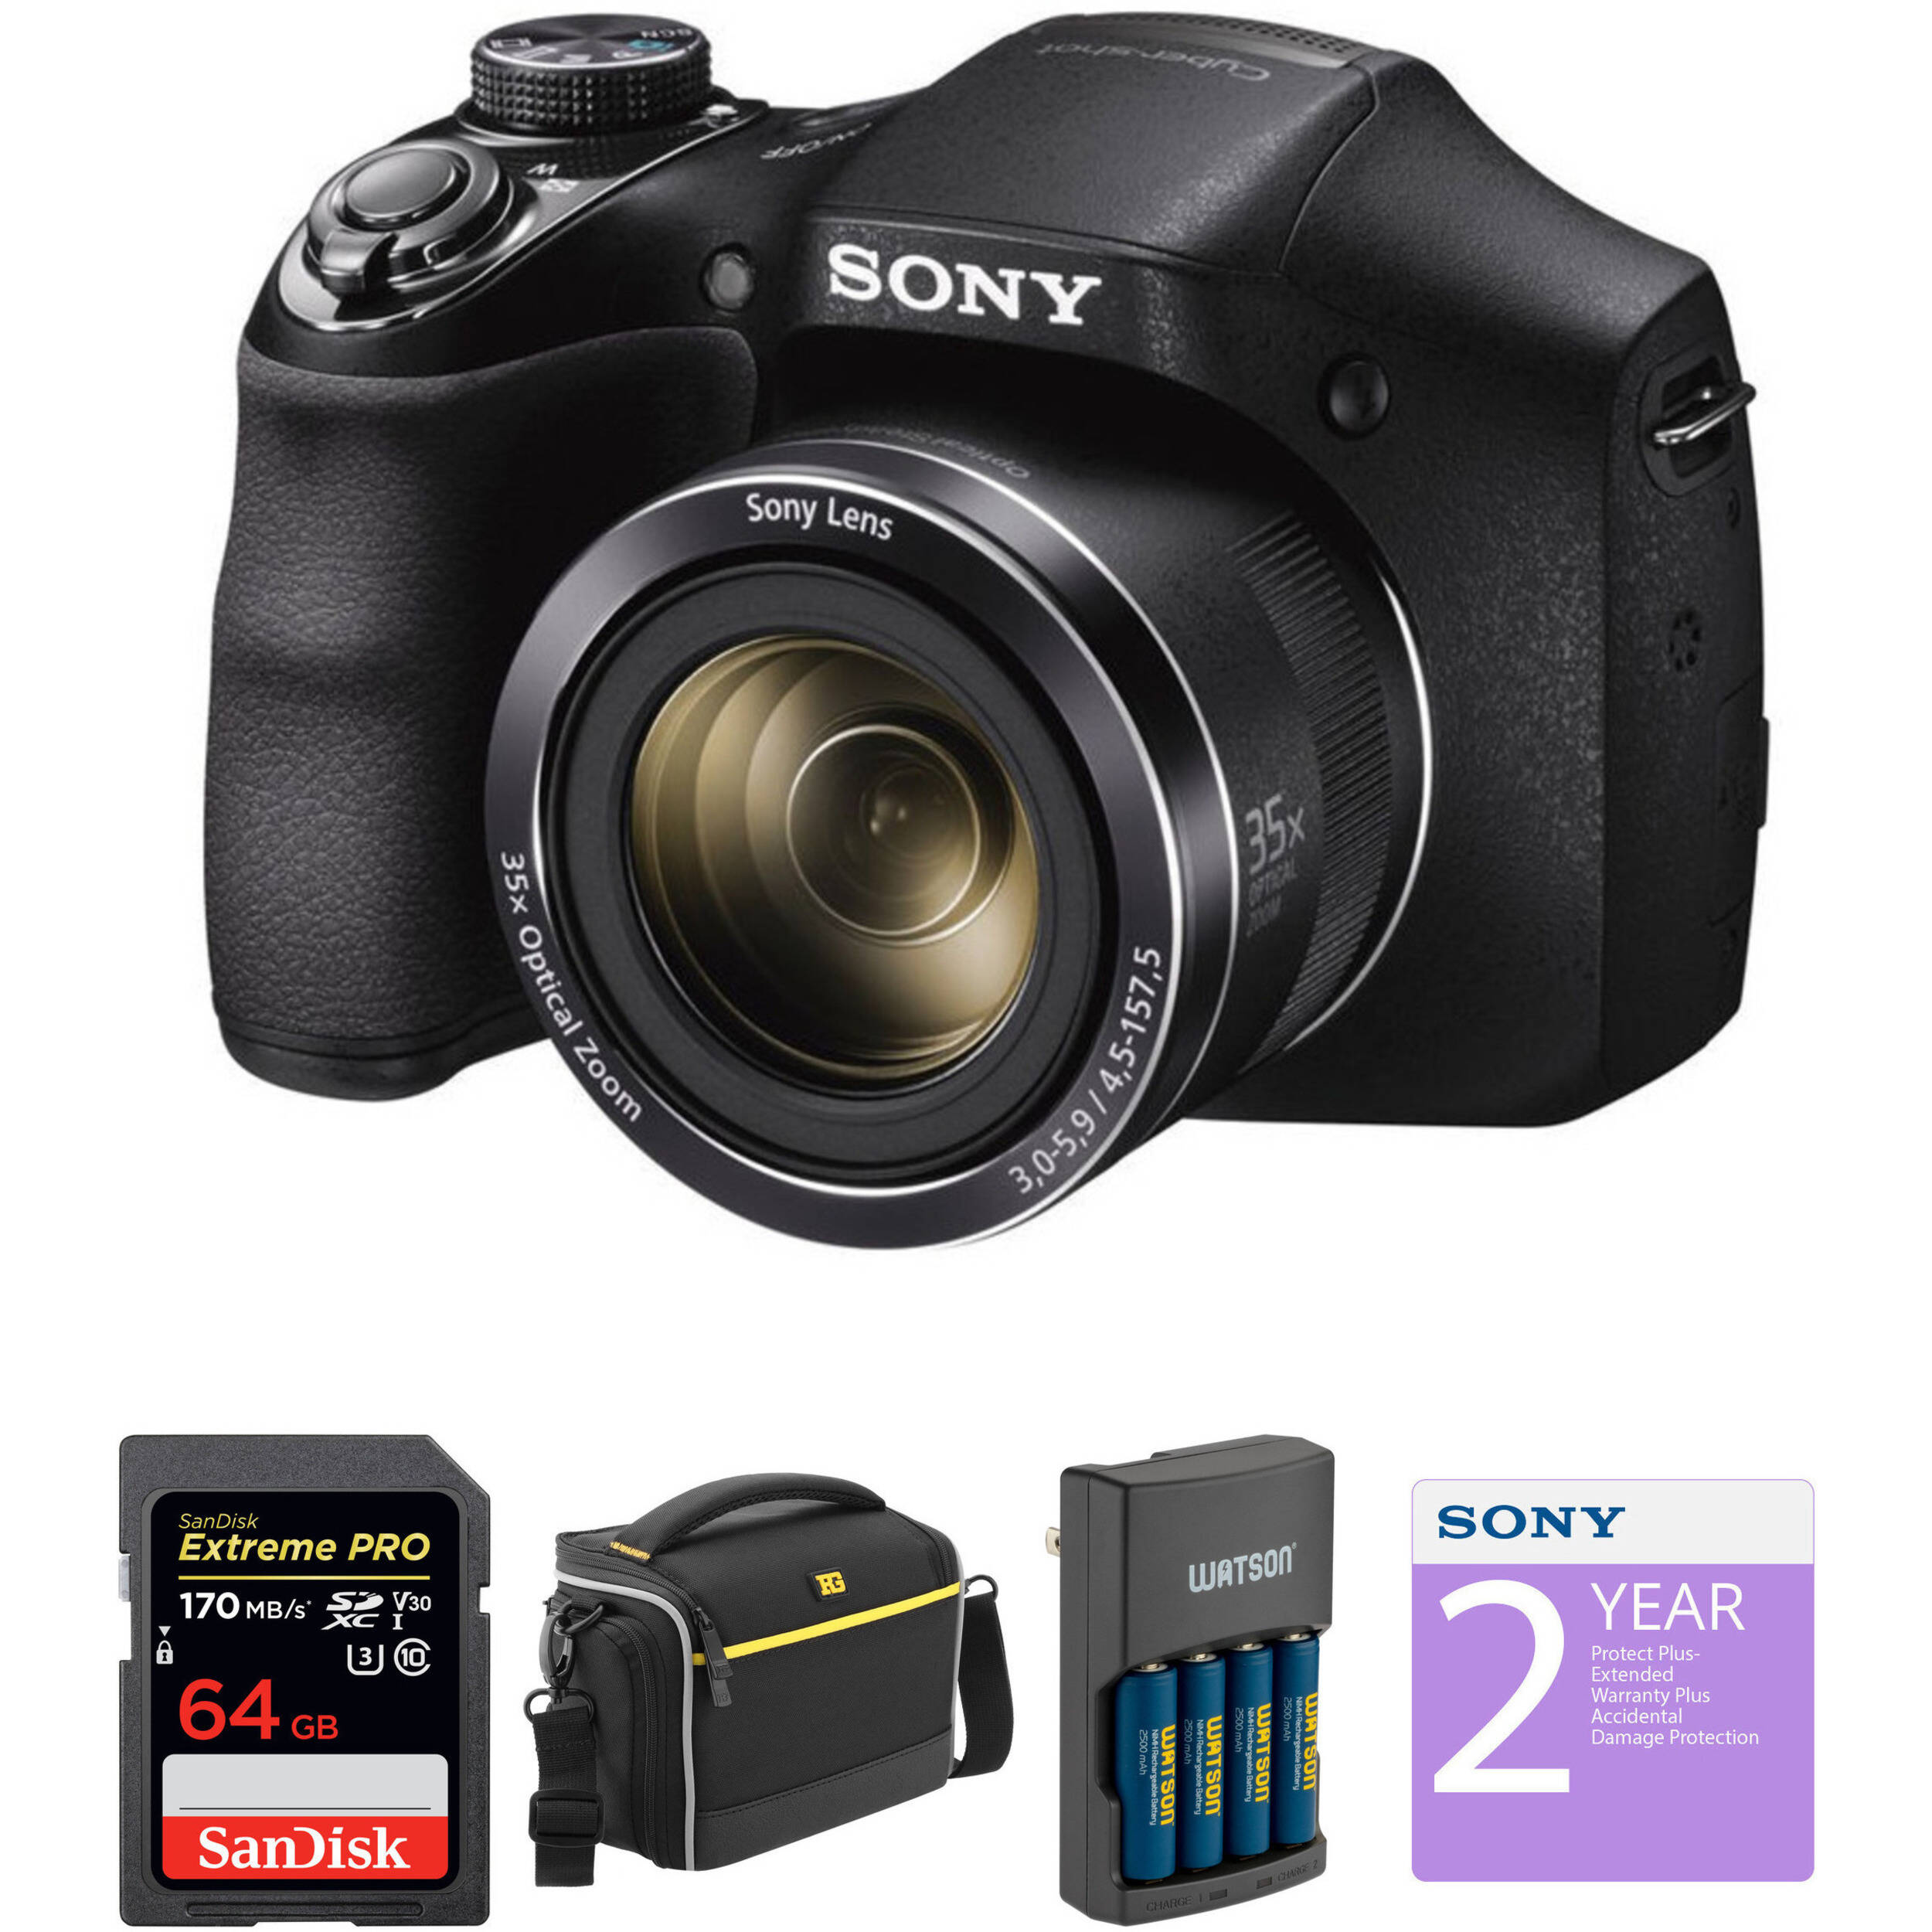 Sony Cyber-shot DSC-H300 Digital Camera (Black)